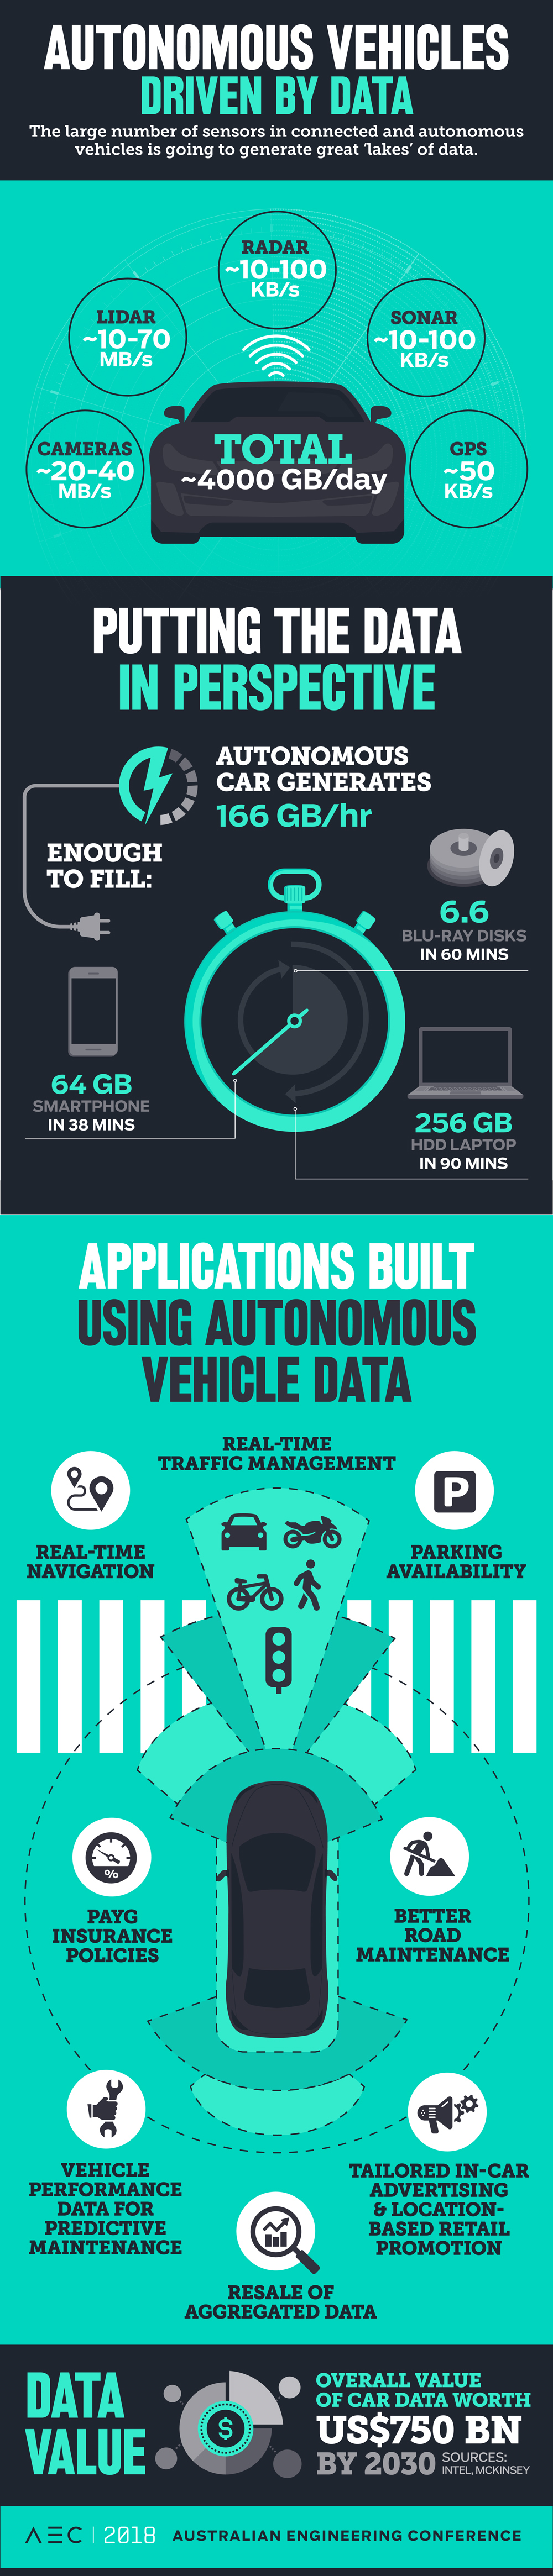 Autonomous vehicles are going to be a data gold mine. What happens to all that info?